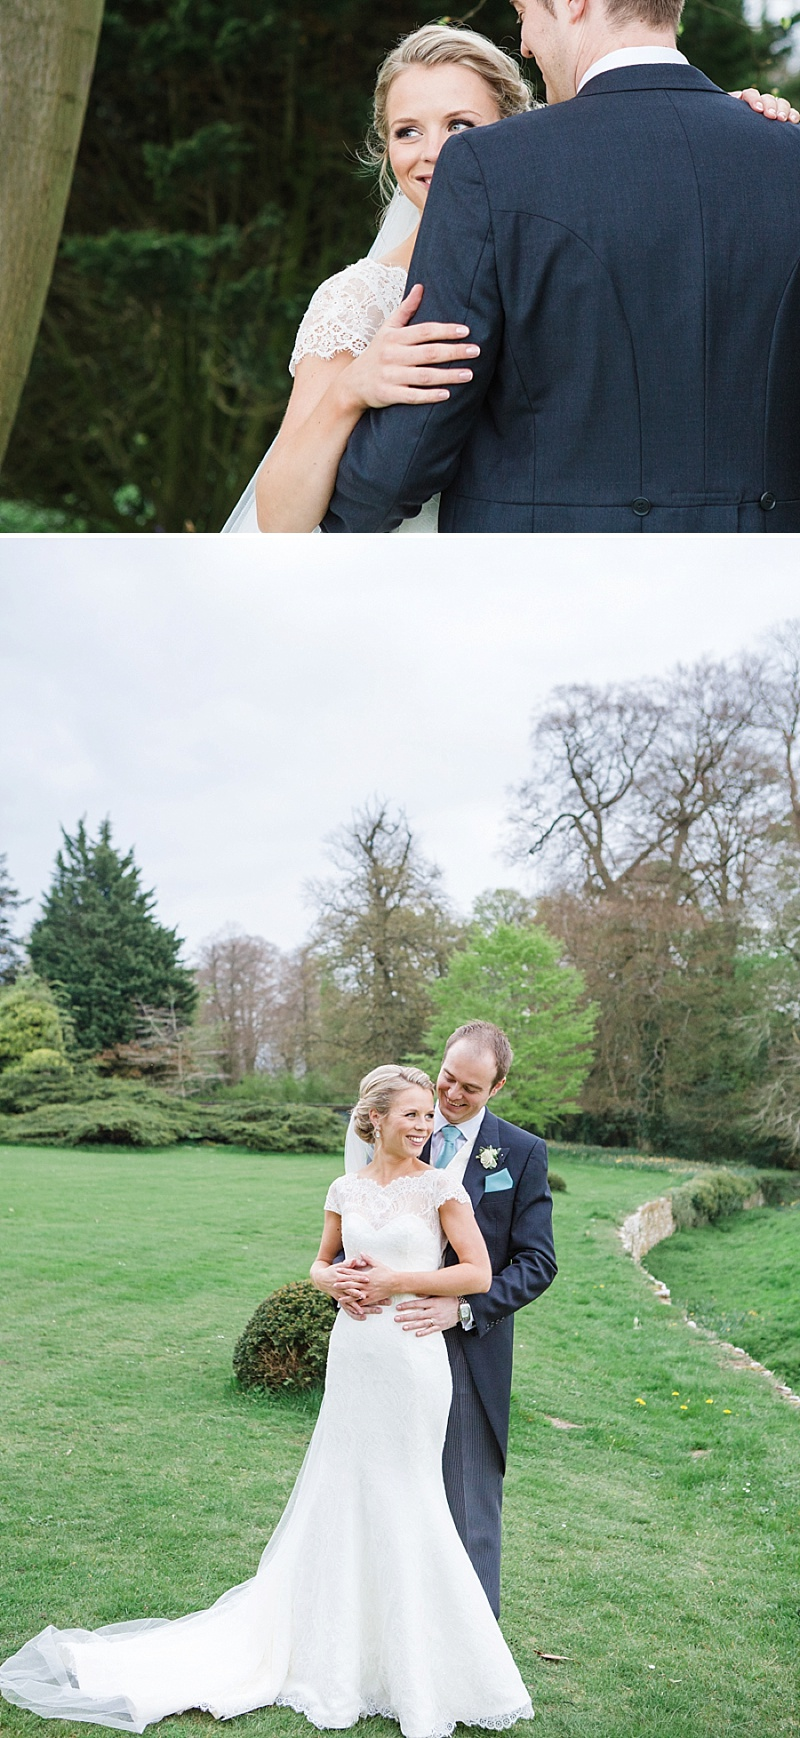 Elegant Wedding At Aynhoe Park With A Pastel Colour Scheme And Bride In A Lace Cap Sleeved Augusta Jones Dress For The Ceremony And A Sequinned Jenny Packham Gown For The Reception And Bridesmaids In Pink Dresses From Ted Baker 6